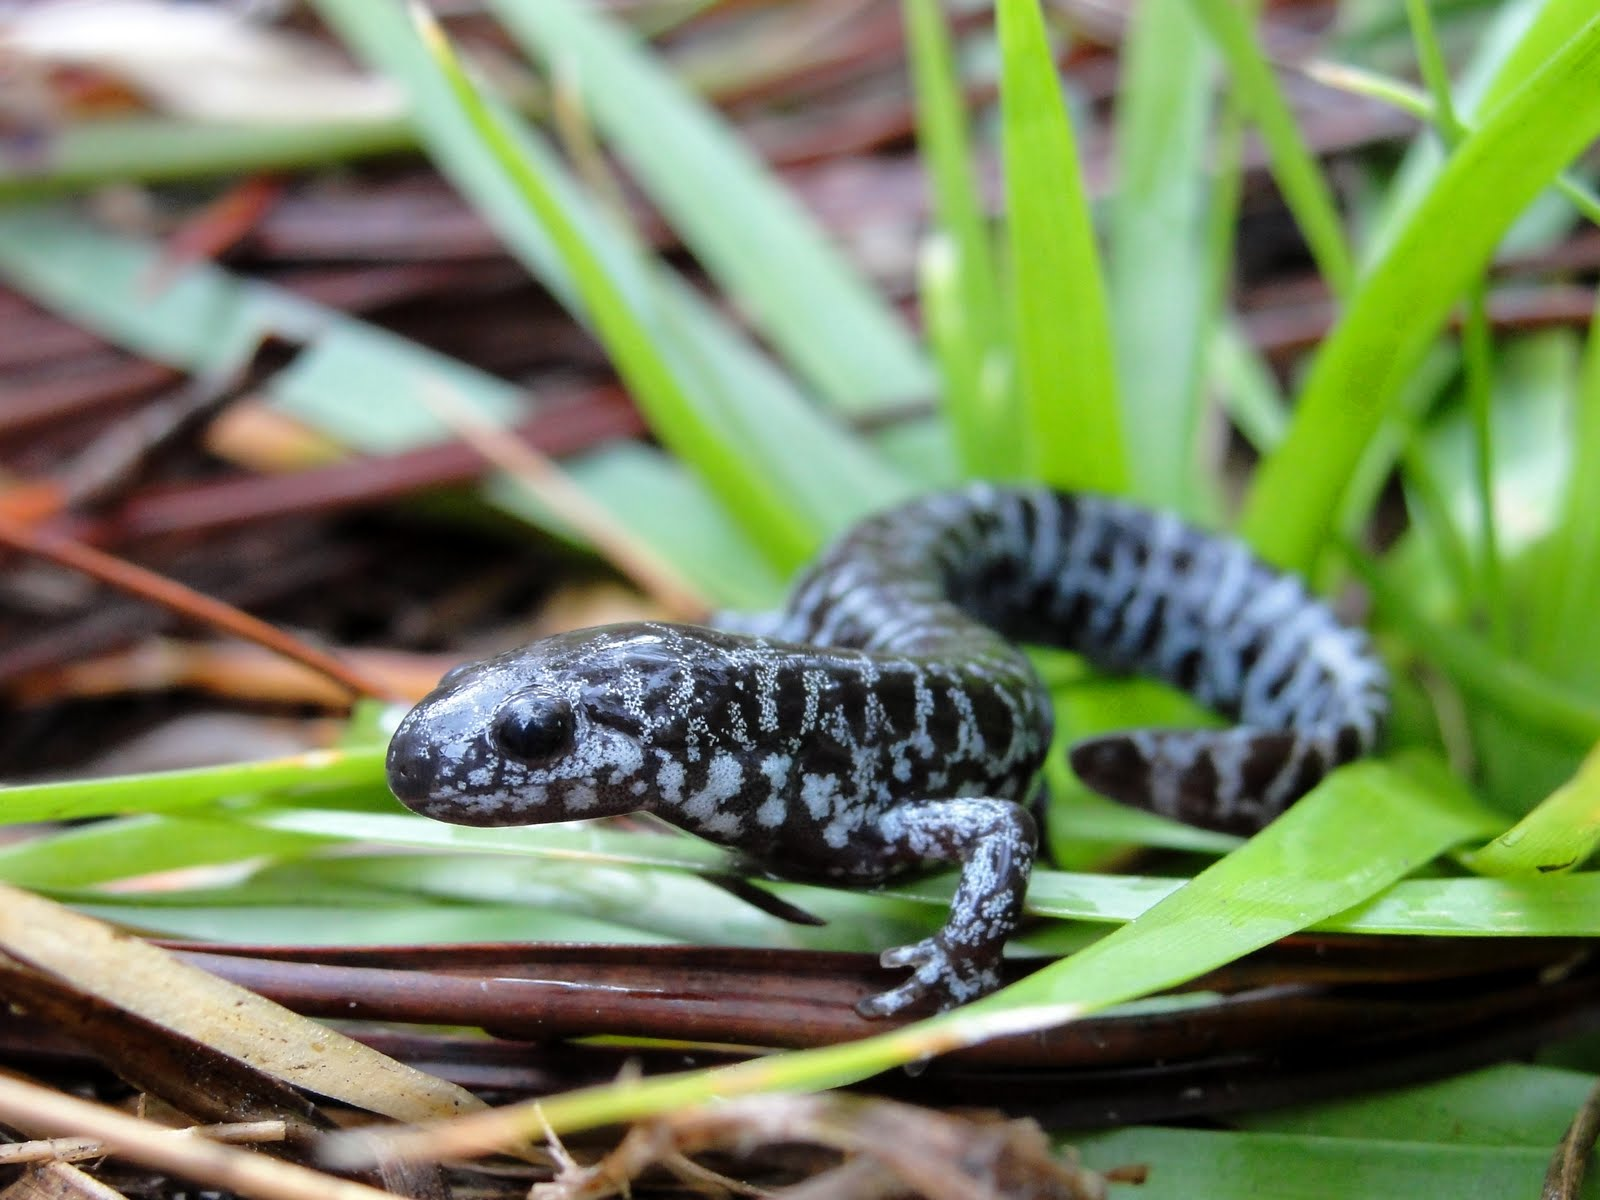 Frosted Flatwoods Salamander